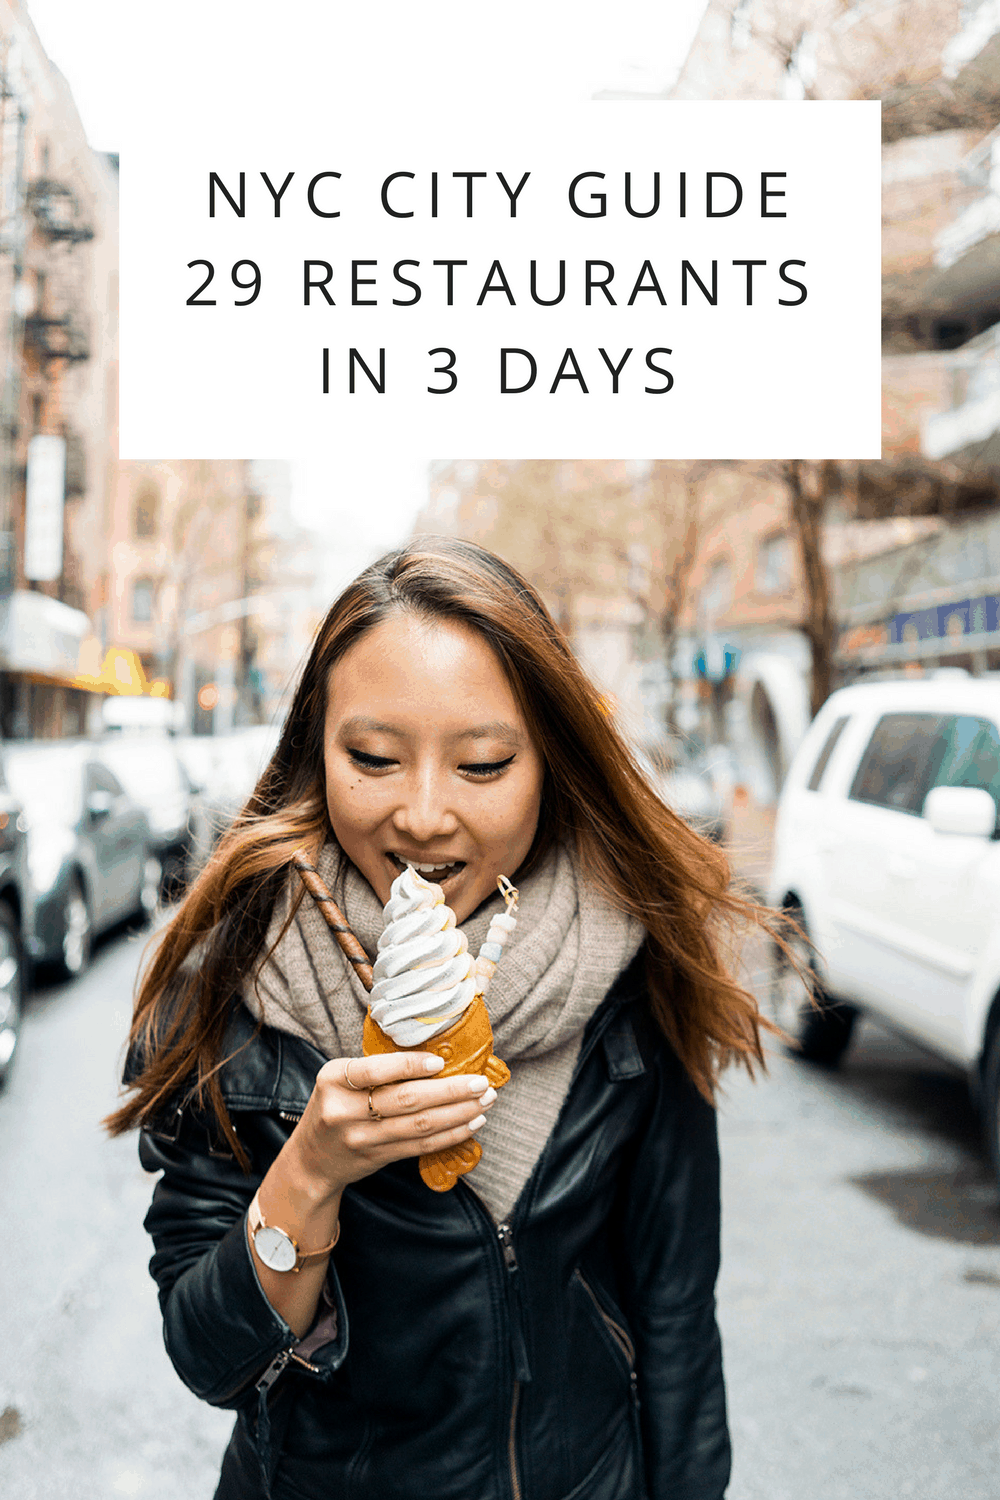 NYC City Guide- 29 Restaurants in 3 Days